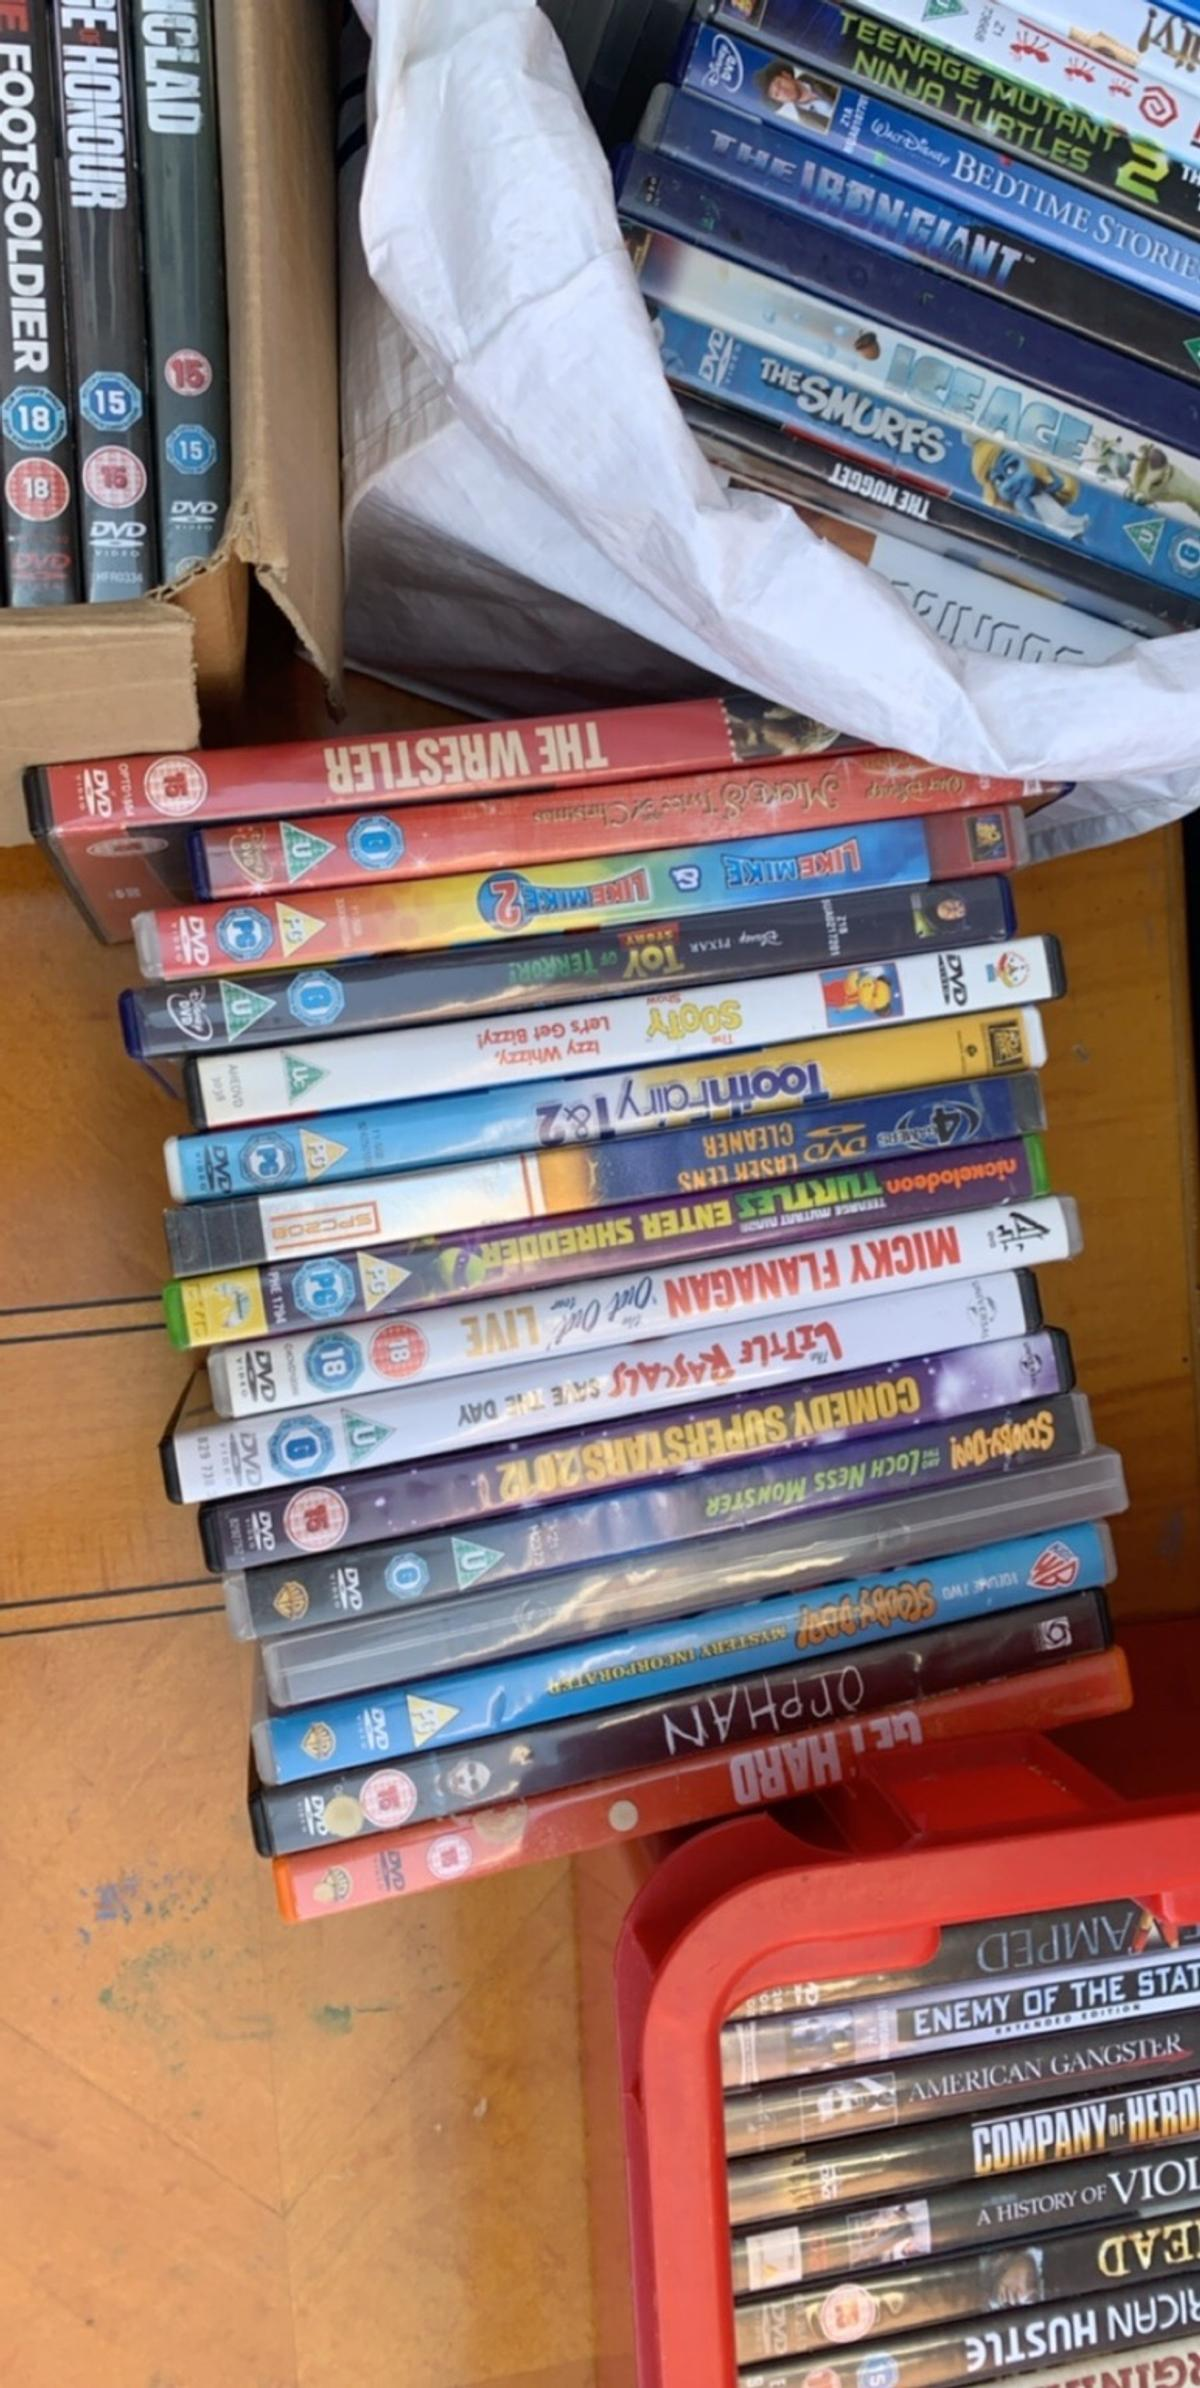 A job lot of dvds for sale all sorts of categories and some thrown in of pirates for free £50 Ono